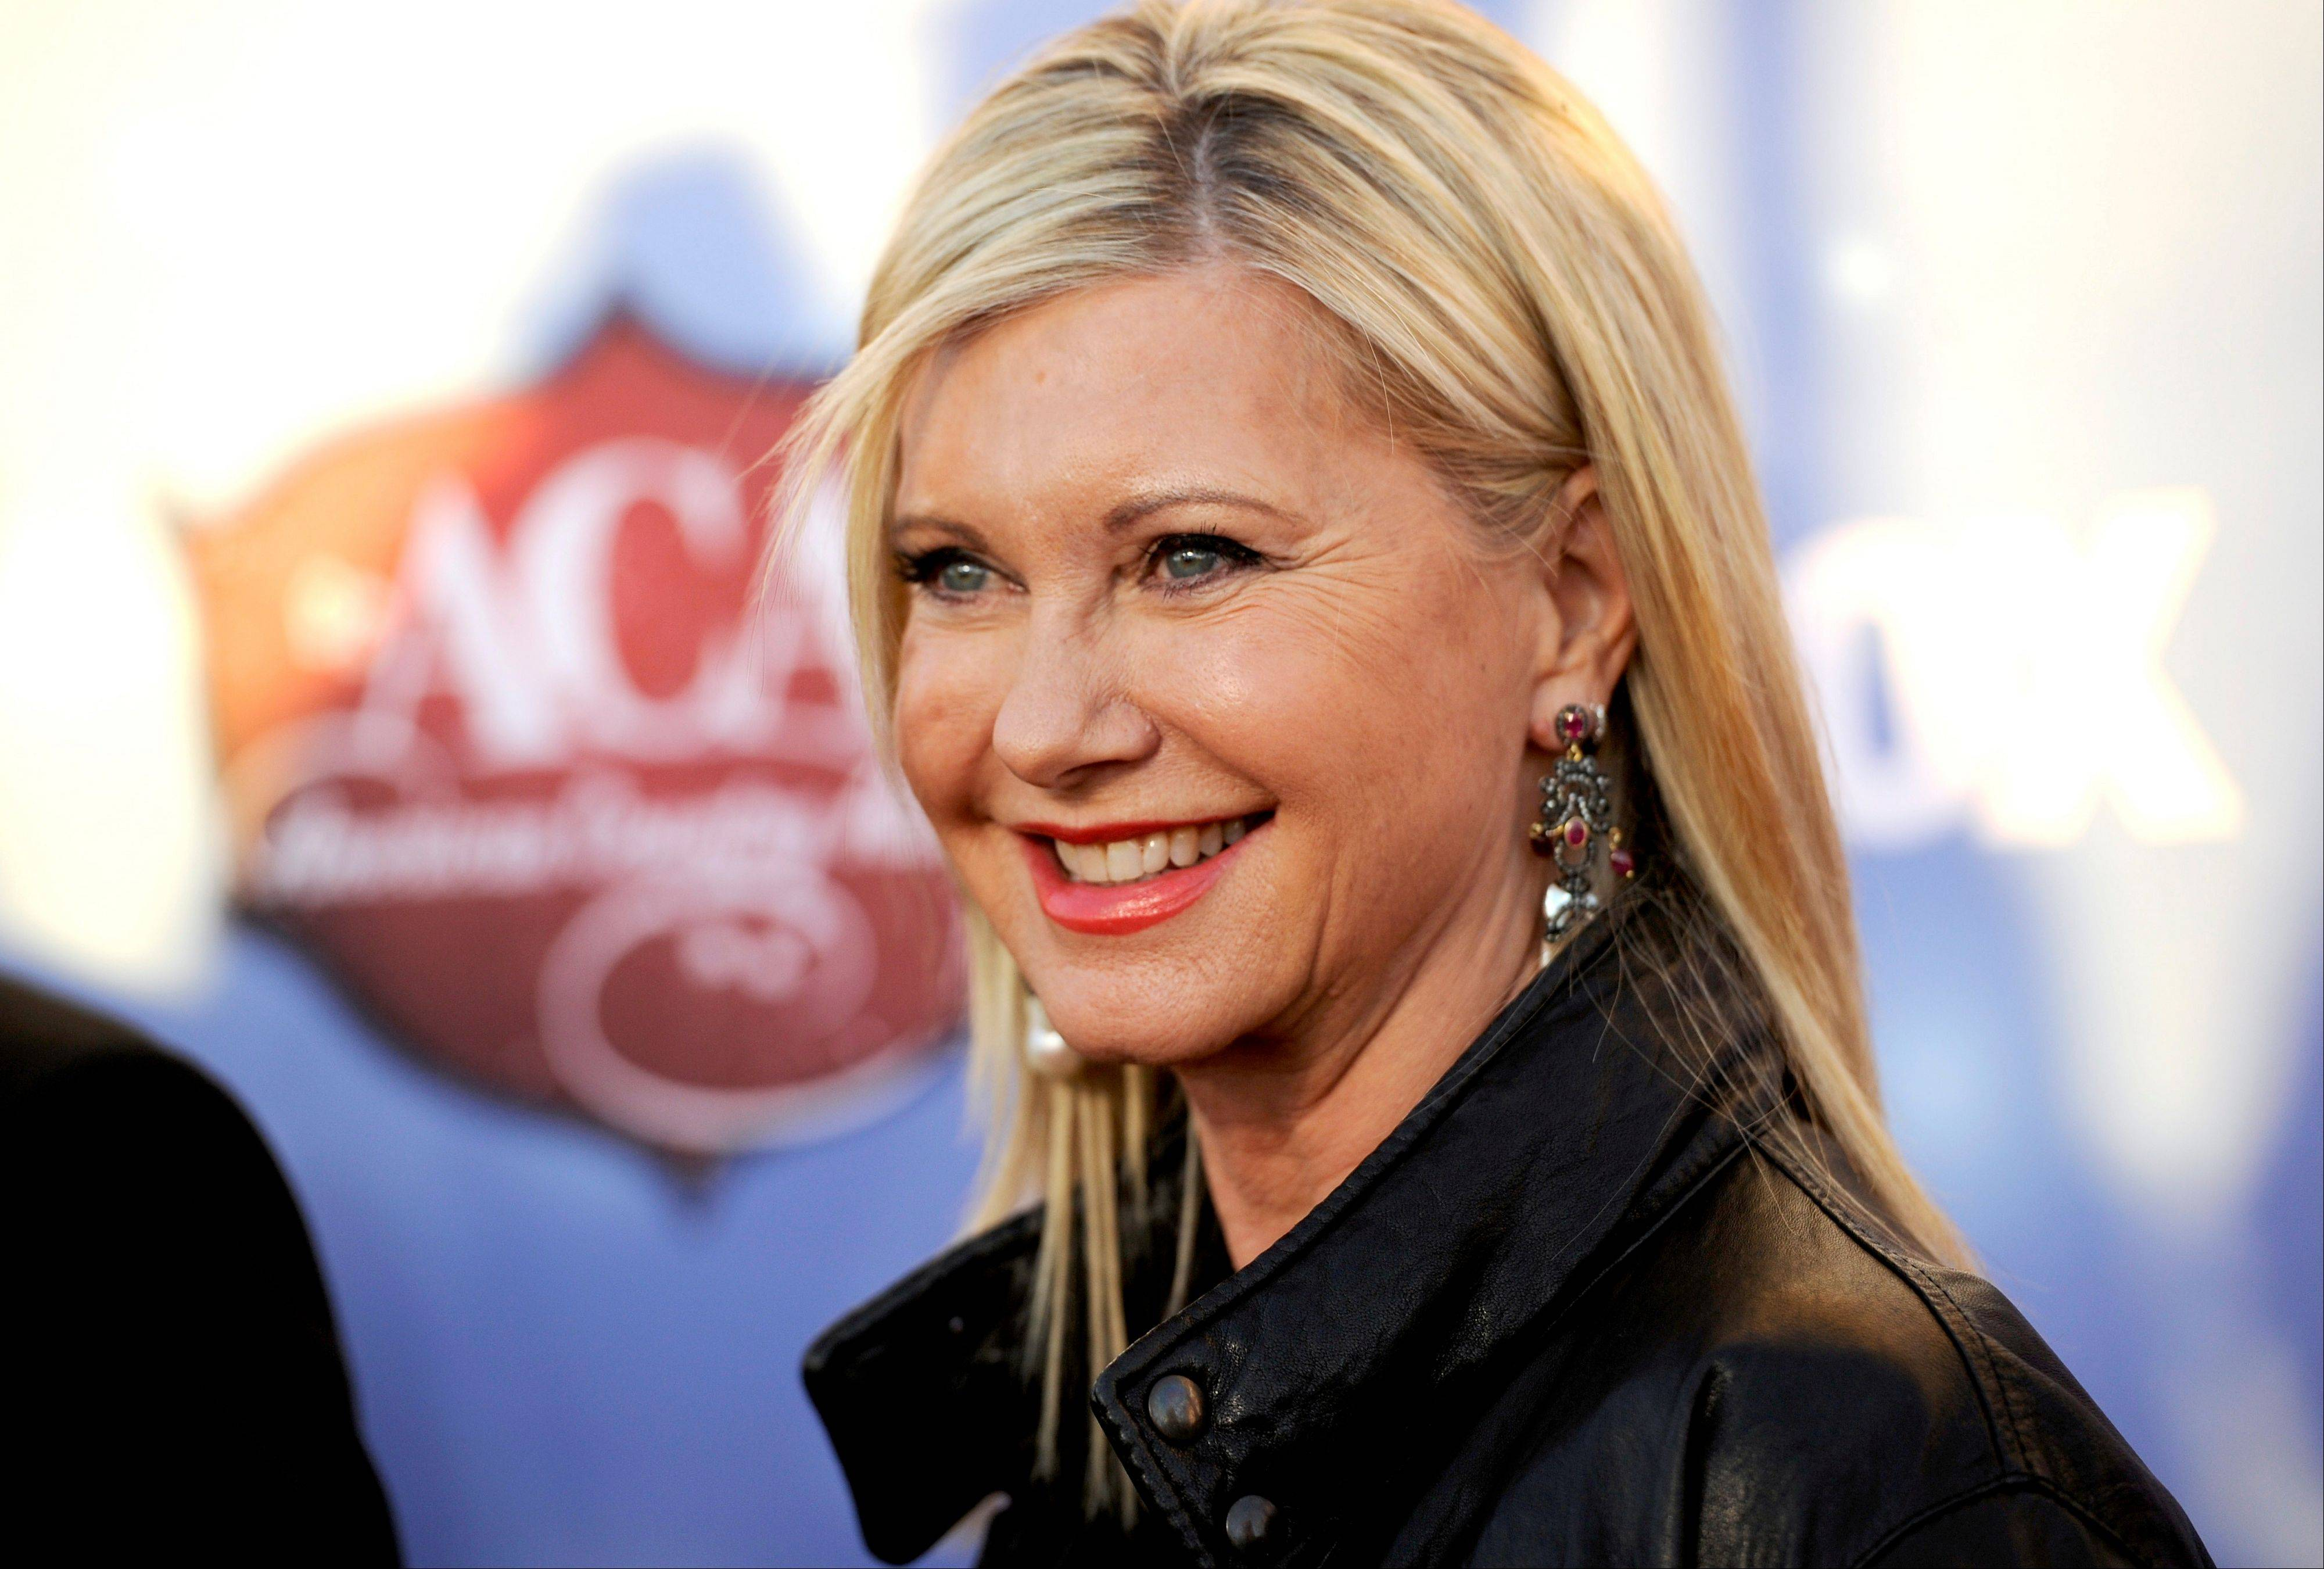 Olivia Newton-John announced a headlining residency Tuesday at the Donny and Marie Showroom at The Flamingo in Las Vegas, starting April 8.